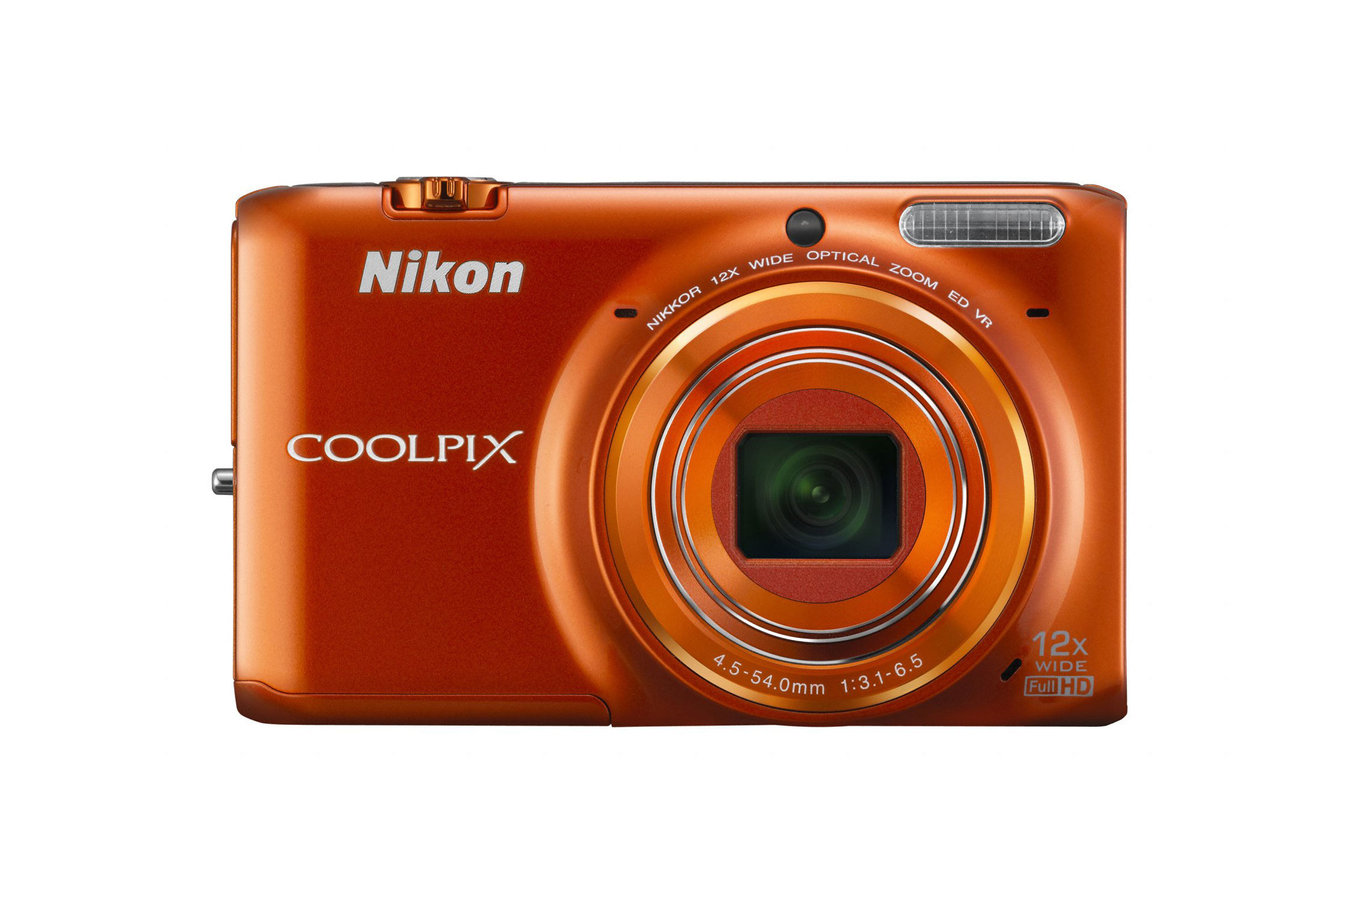 appareil photo compact nikon coolpix s6500 orange 1372629 darty. Black Bedroom Furniture Sets. Home Design Ideas